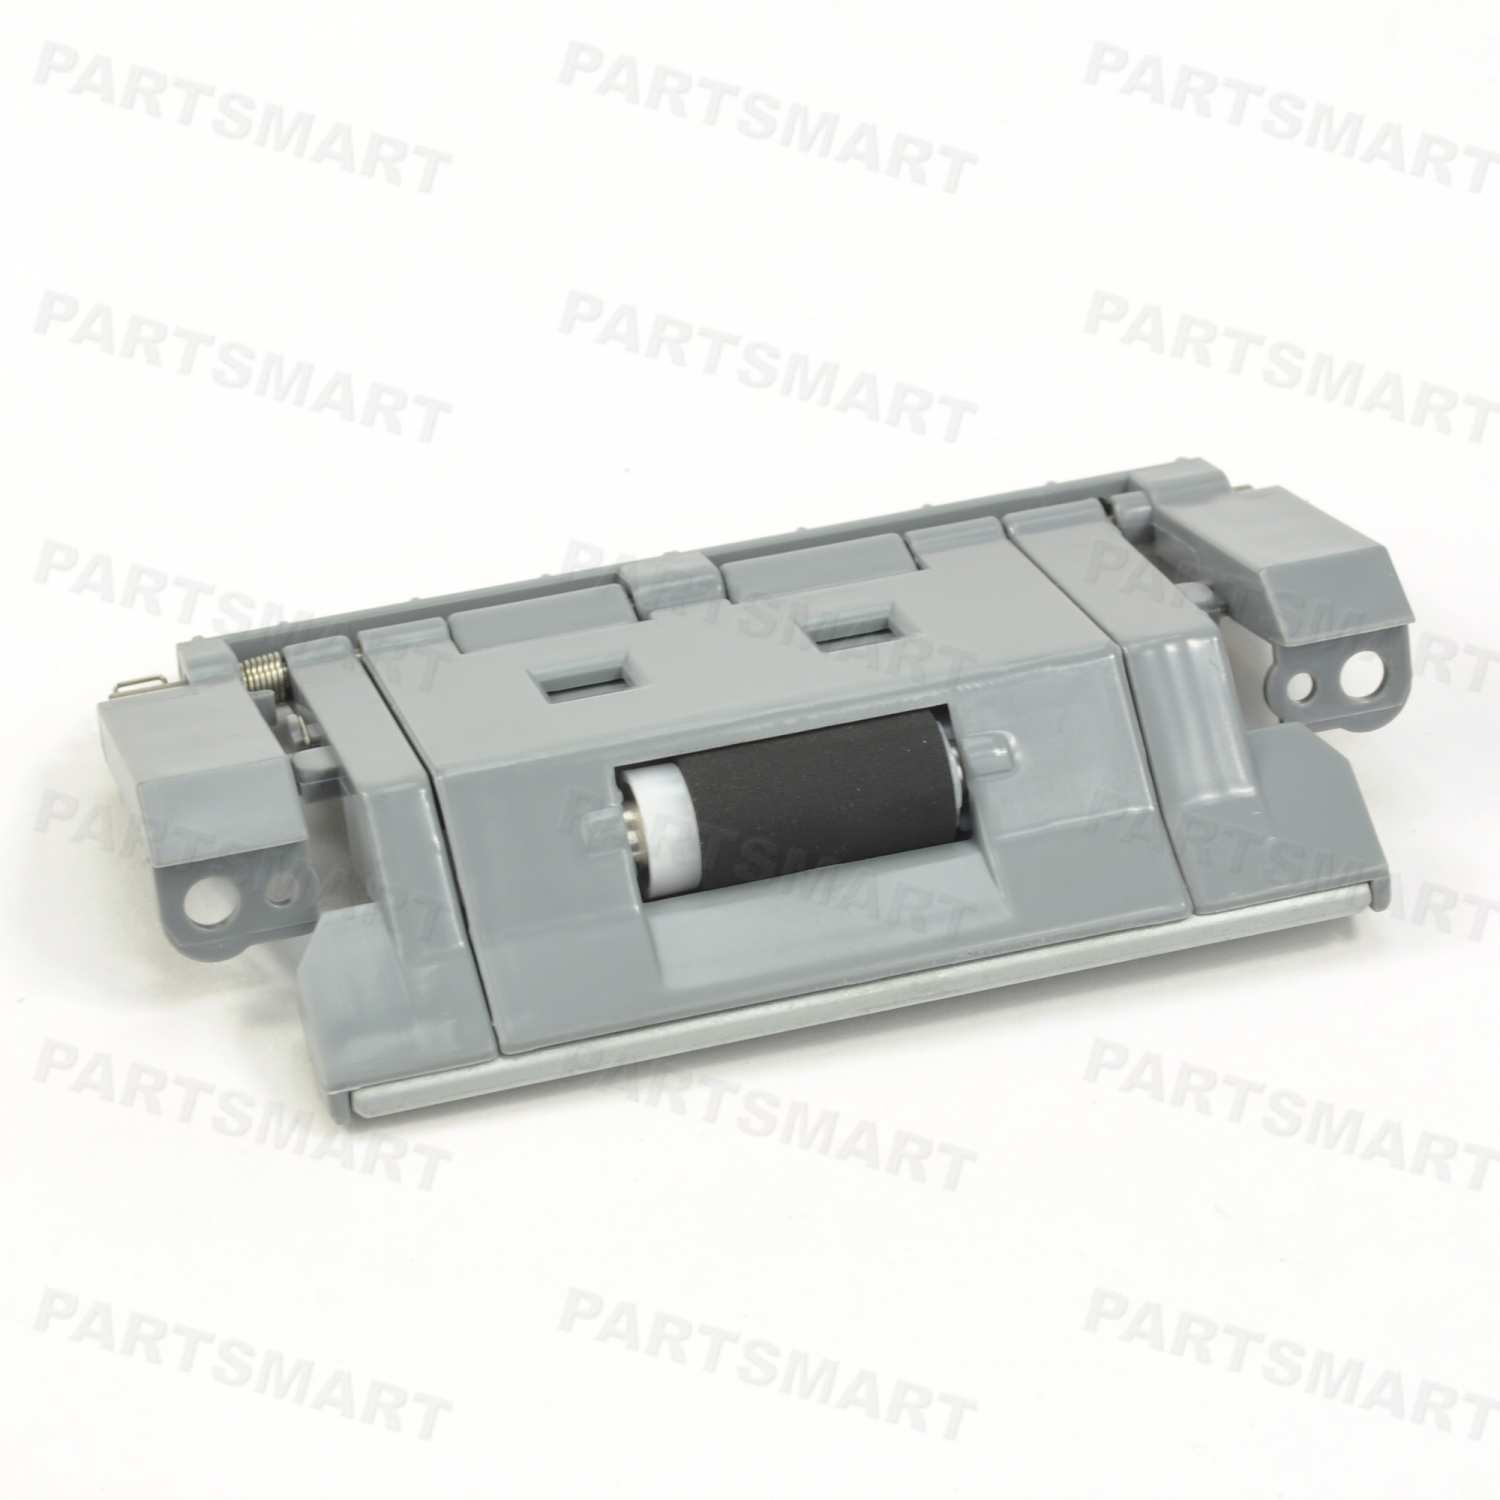 RM1-4966-000 Separation Roller Assy, Tray 2 for HP Color LaserJet CP3525